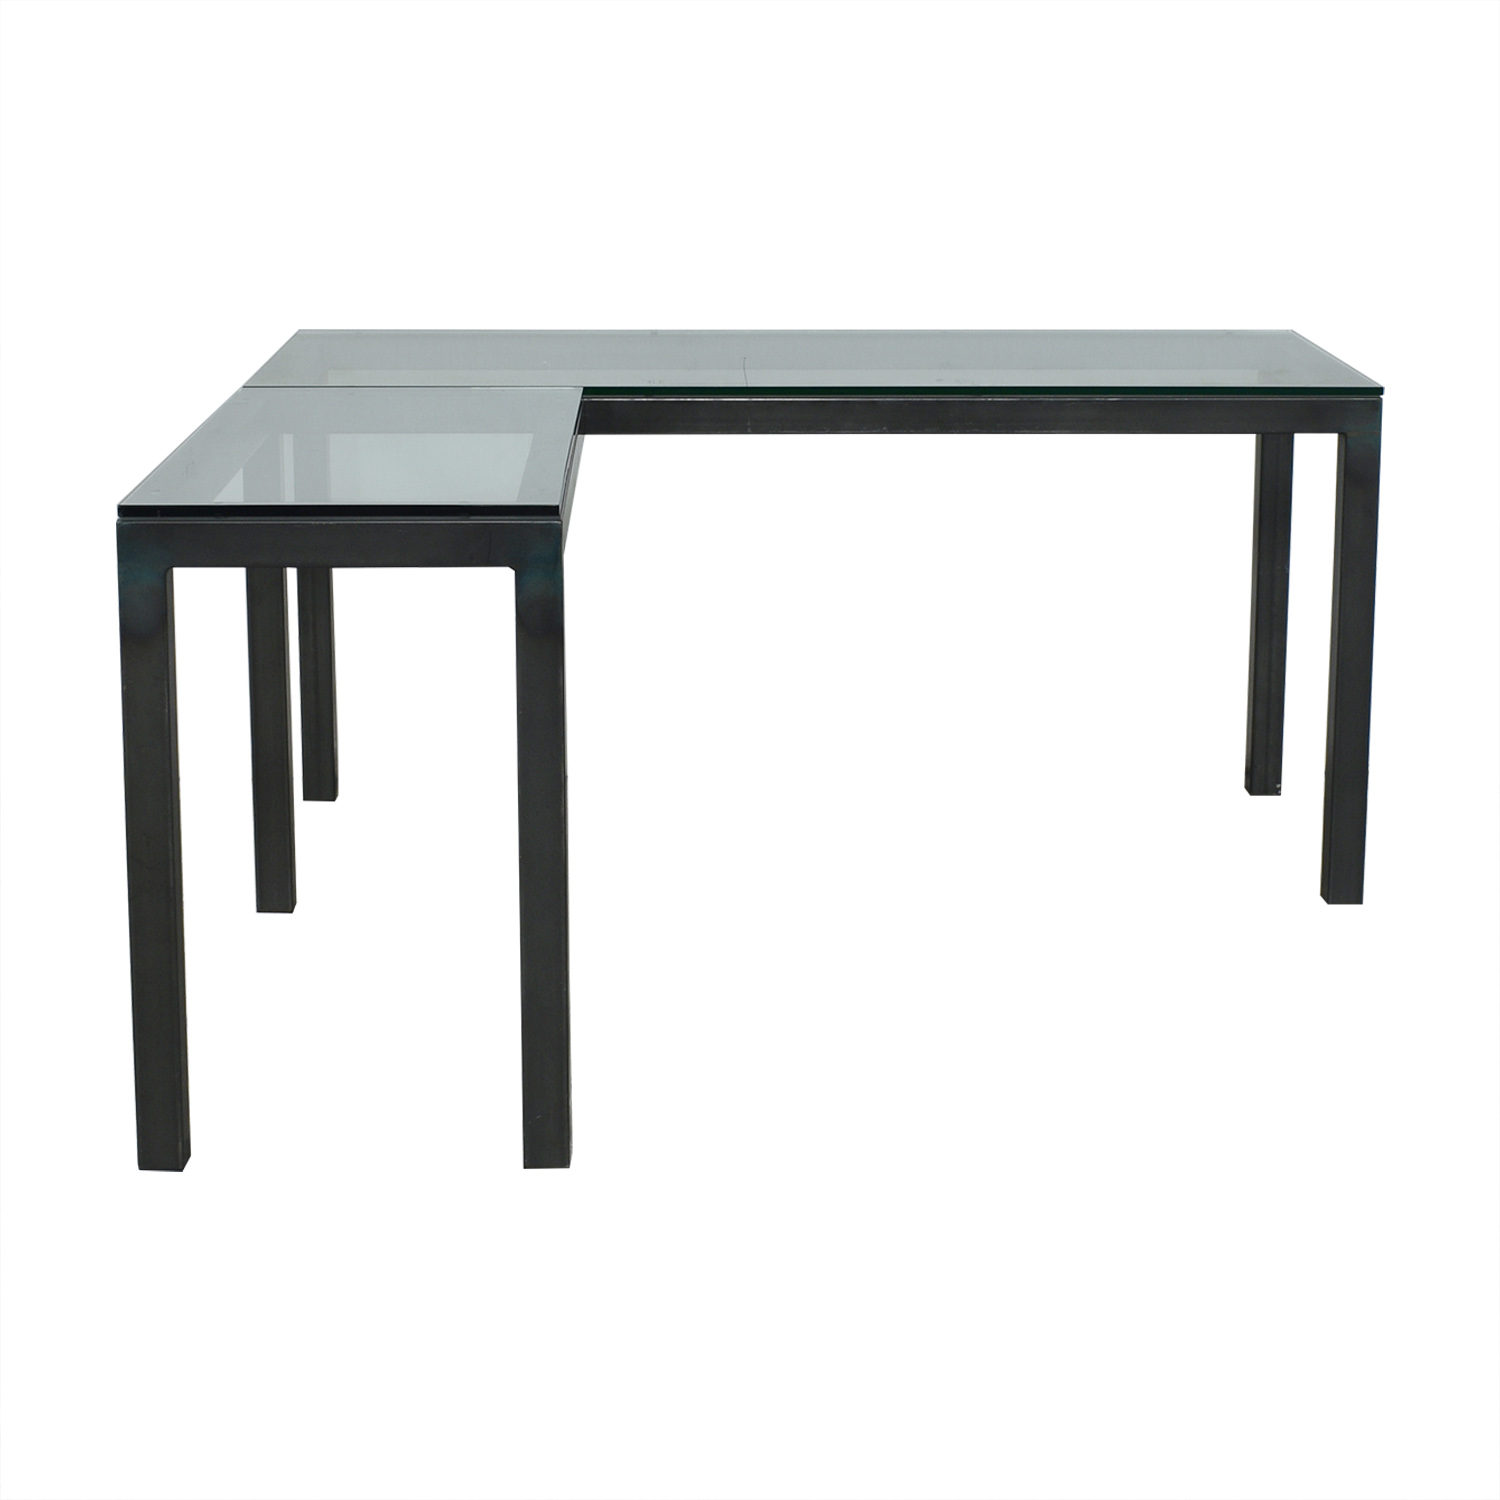 shop Room & Board Room & Board Parsons L-Shaped and Corner Desk online